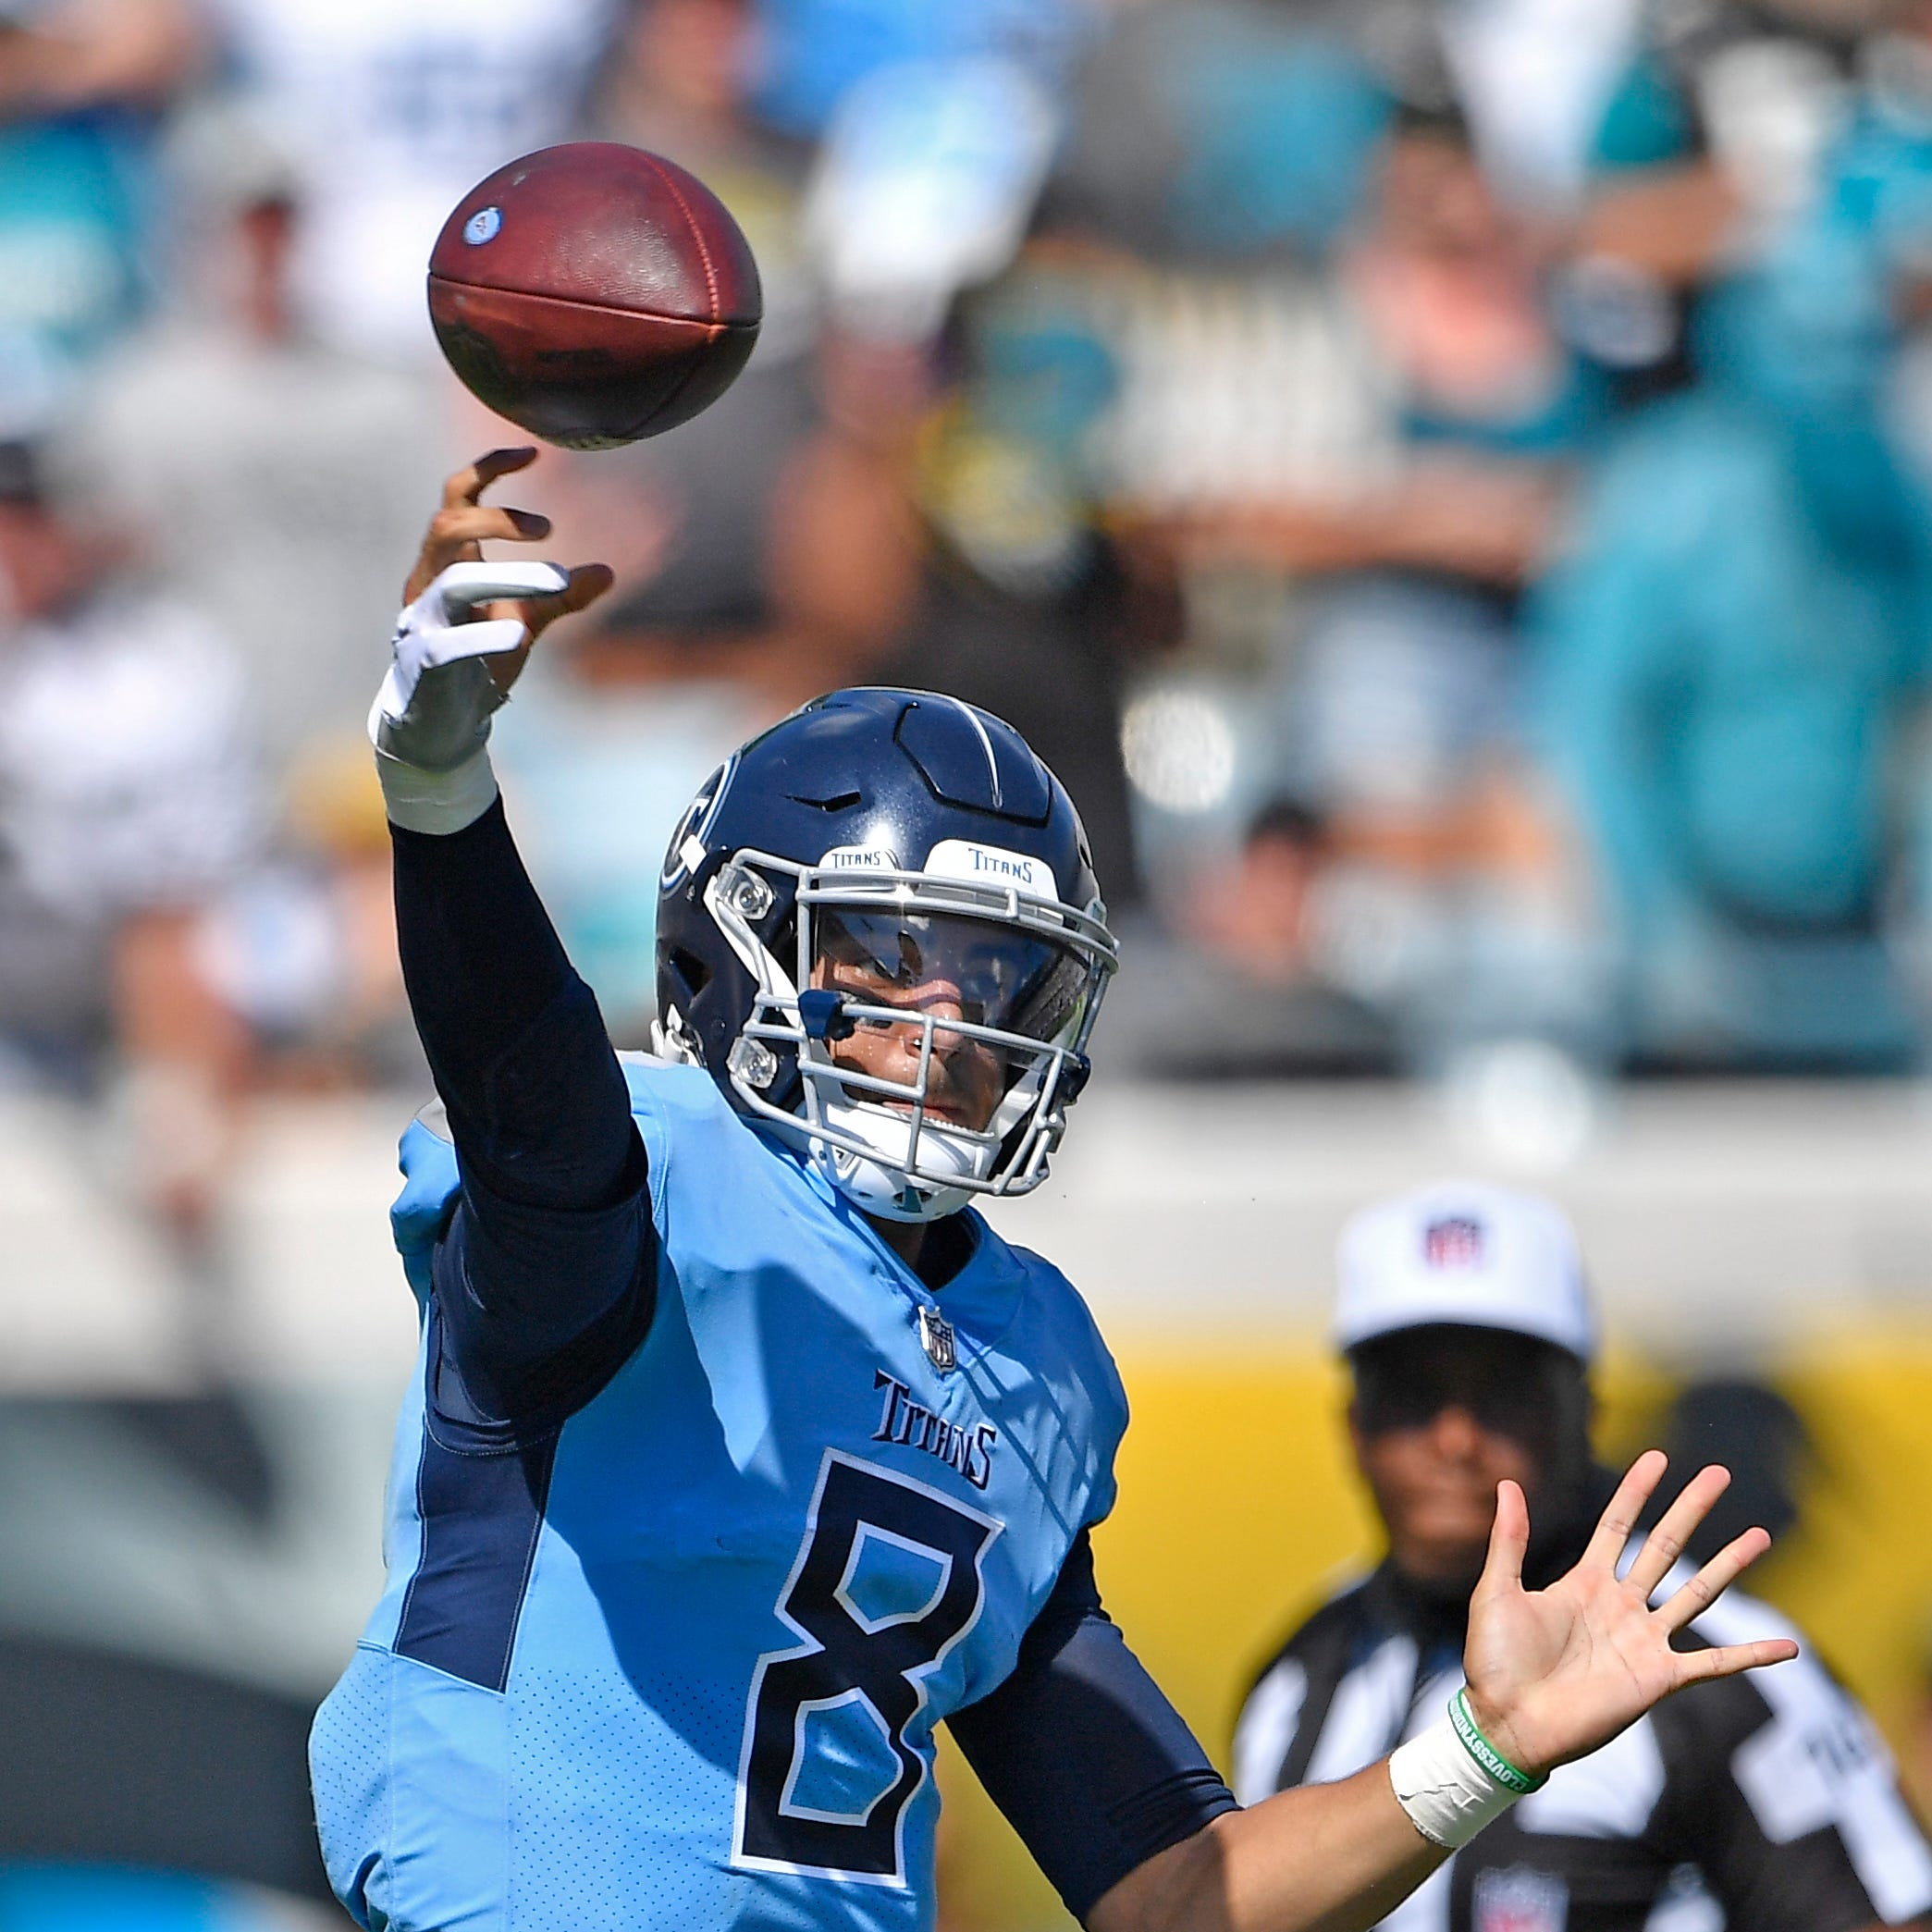 Marcus Mariota is up, Blake Bortles is down after Titans upset Jaguars